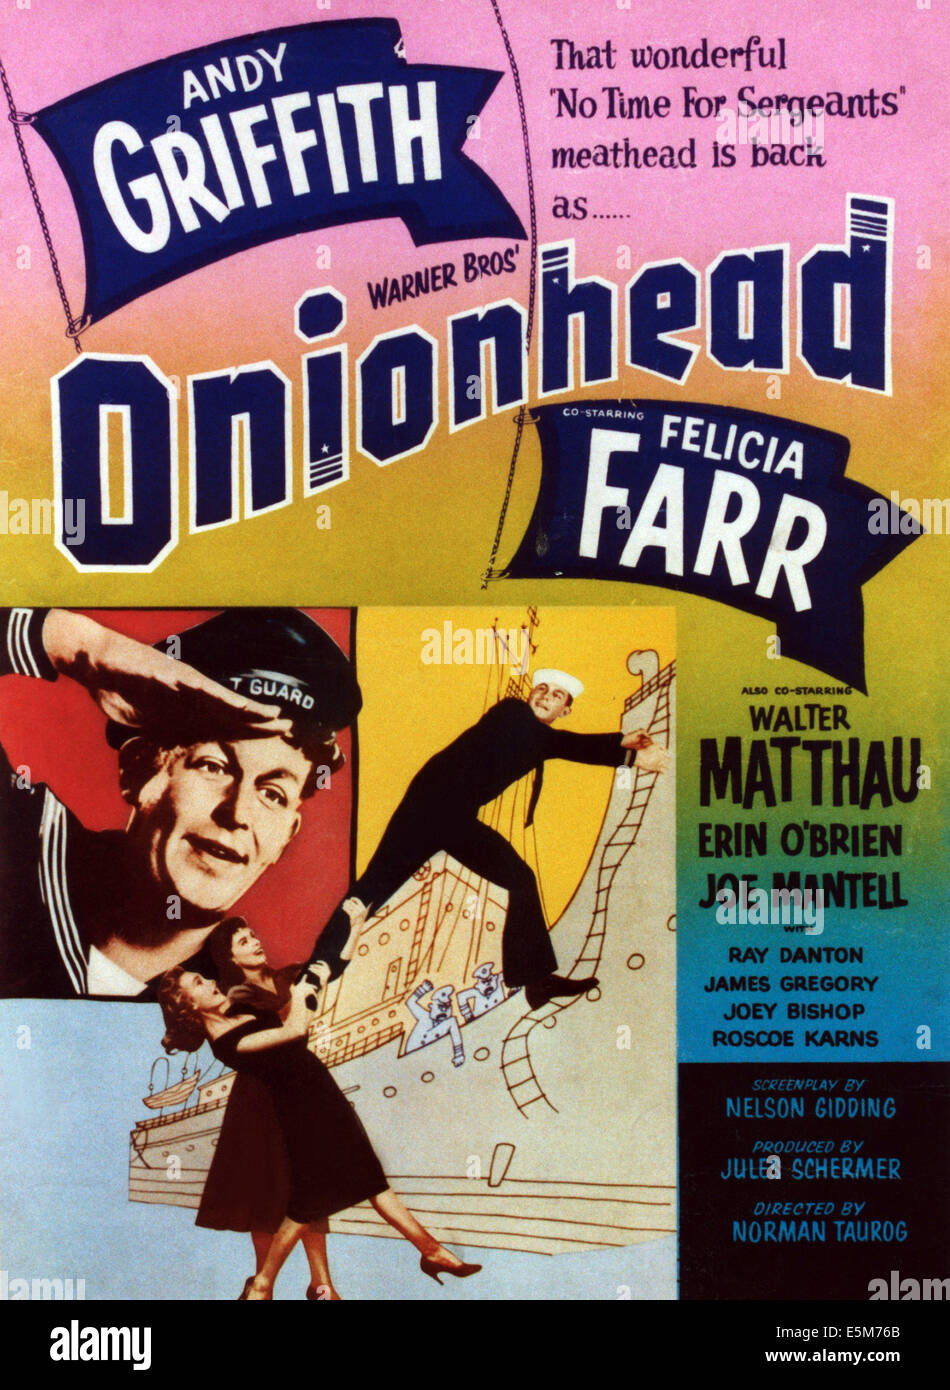 ONIONHEAD, Andy Griffith (top twice), 1958 - Stock Image